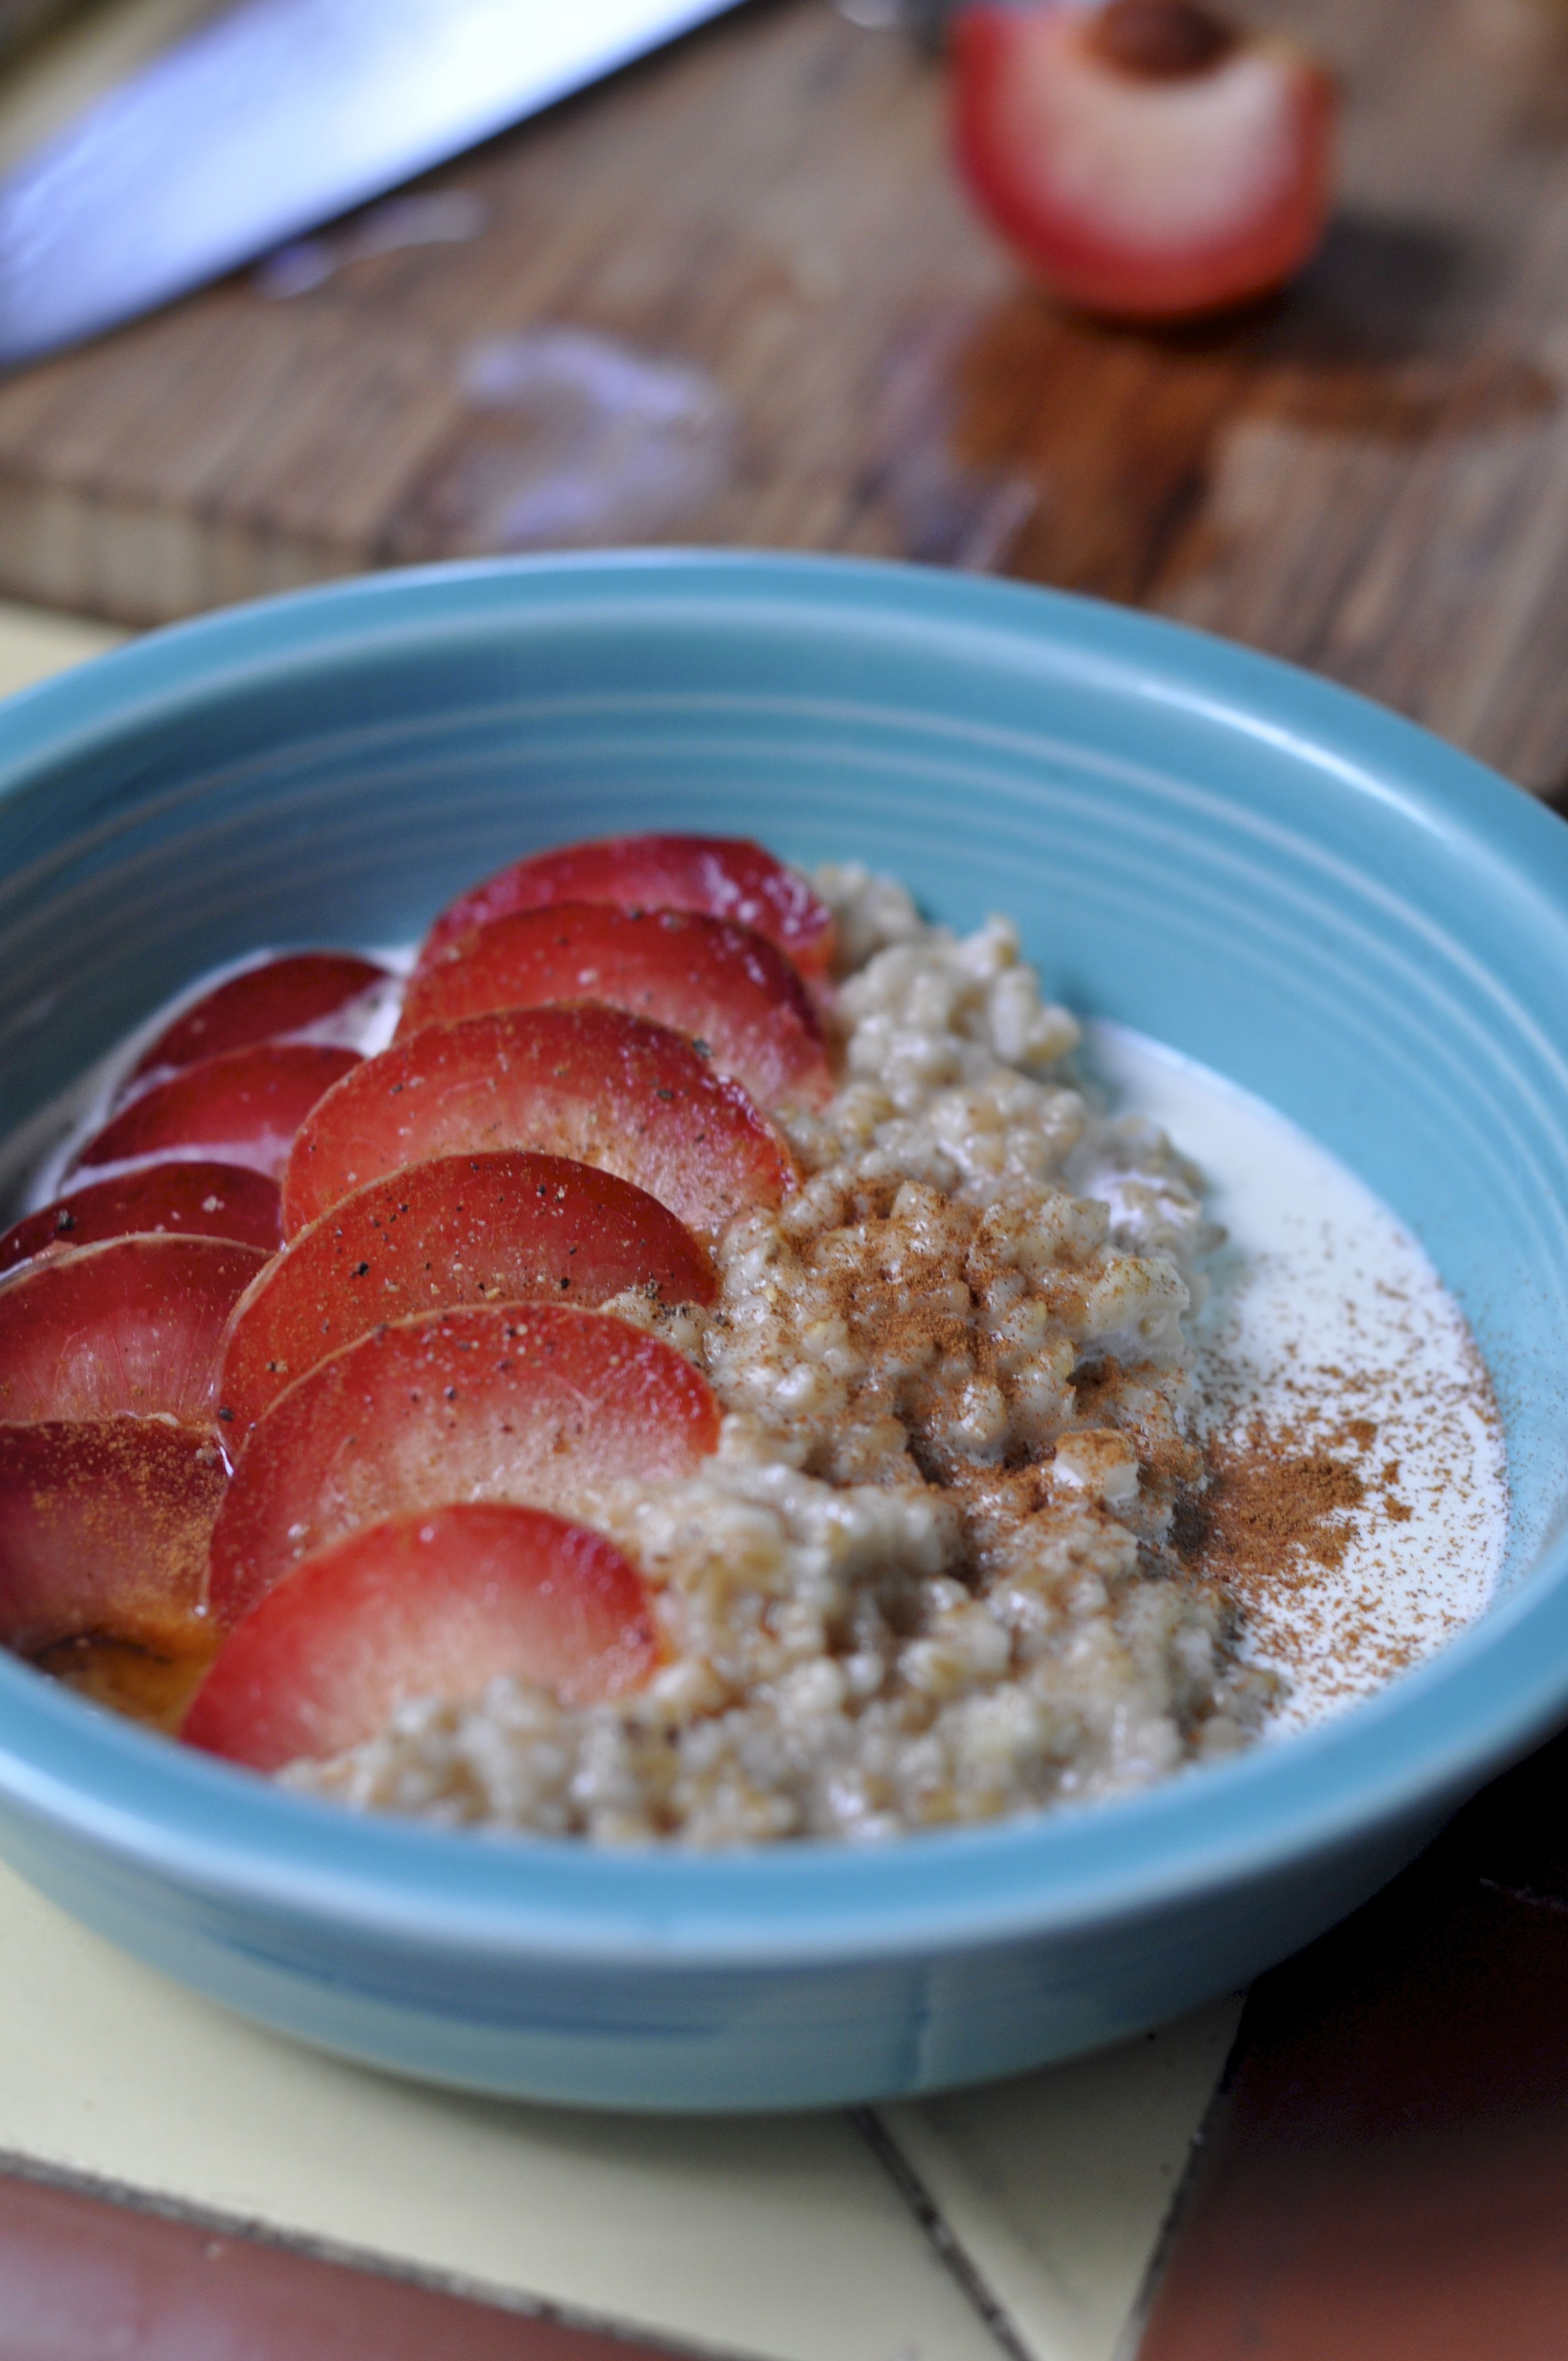 Baked oatmeal with ginger and pluots.